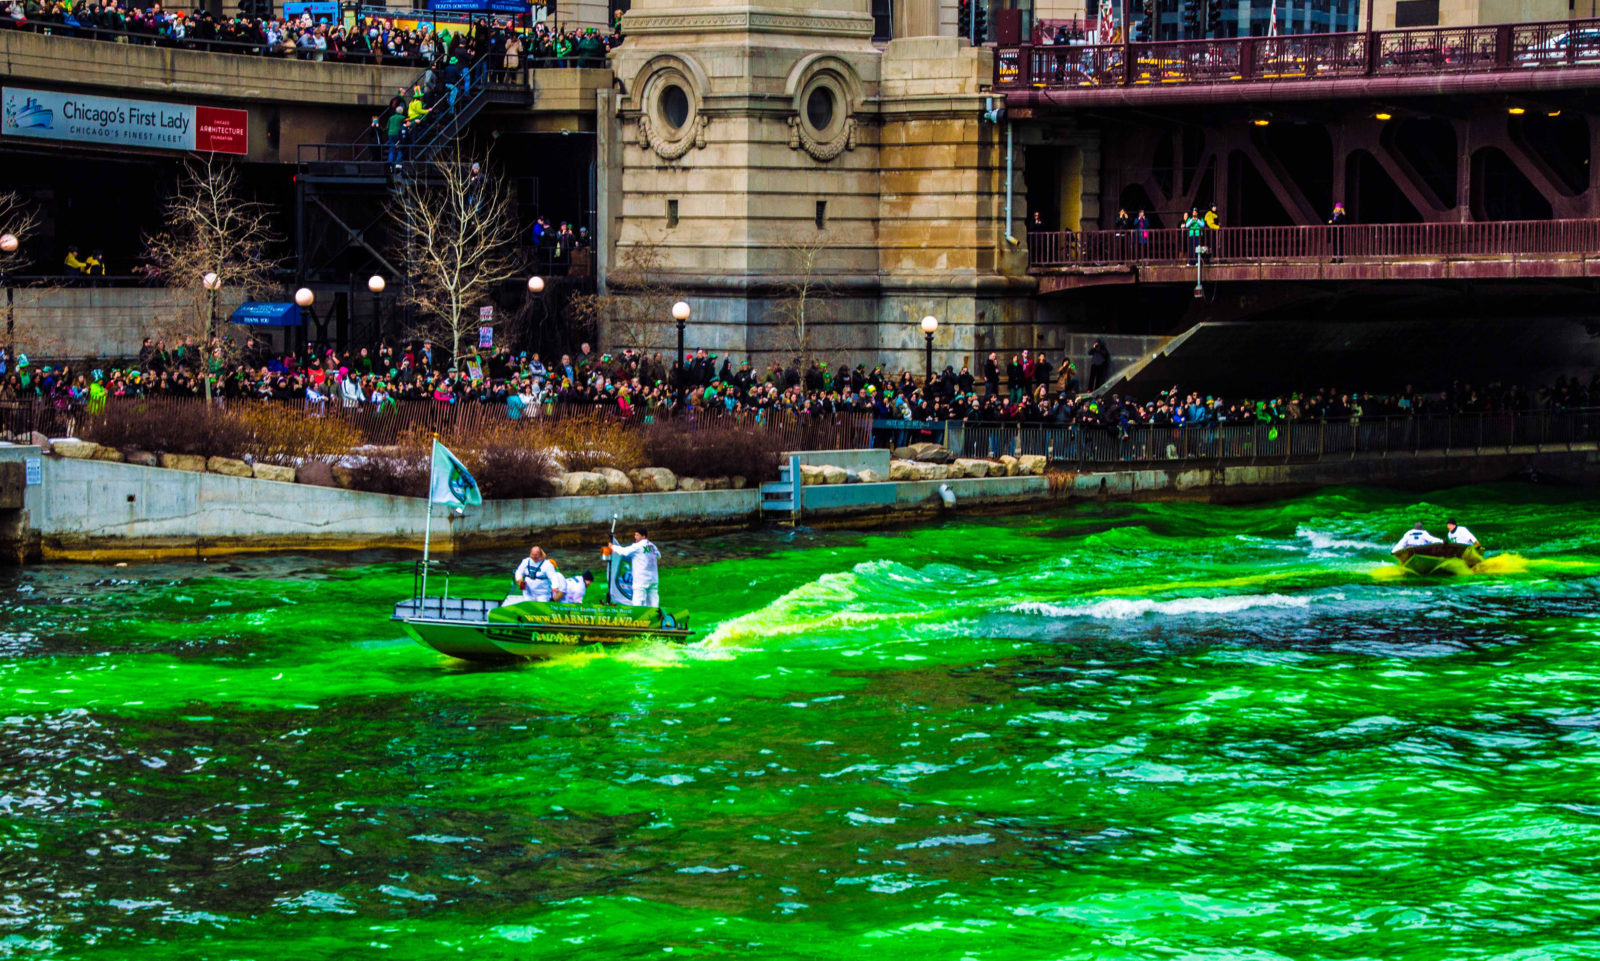 Dyeing the Chicago River on St. Patrick's Day